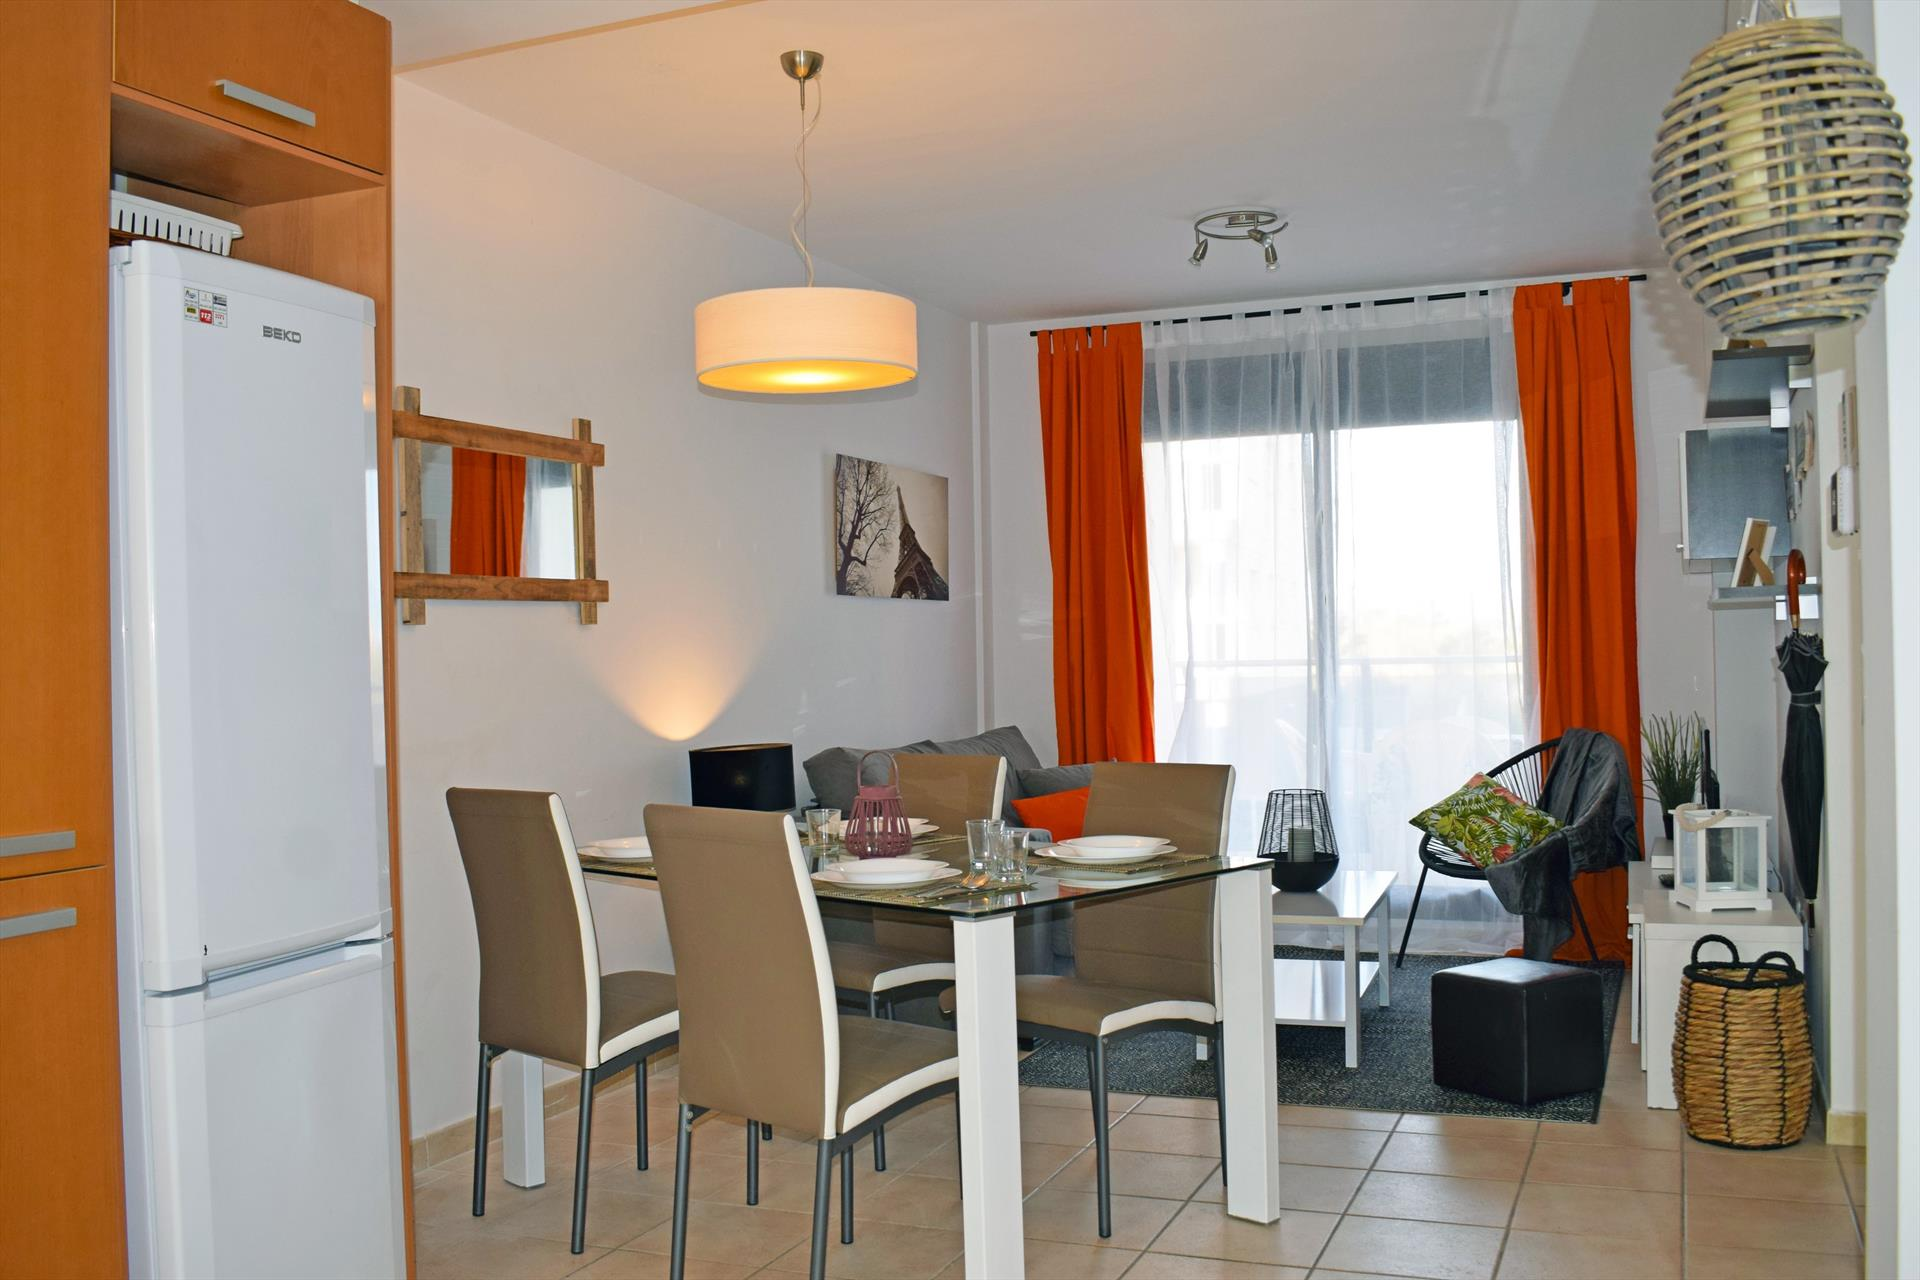 AP3 Migjorn Mar de Bellreguard, Beautiful and cheerful apartment in Bellreguard, on the Costa Blanca, Spain  with communal pool for 6 persons.....